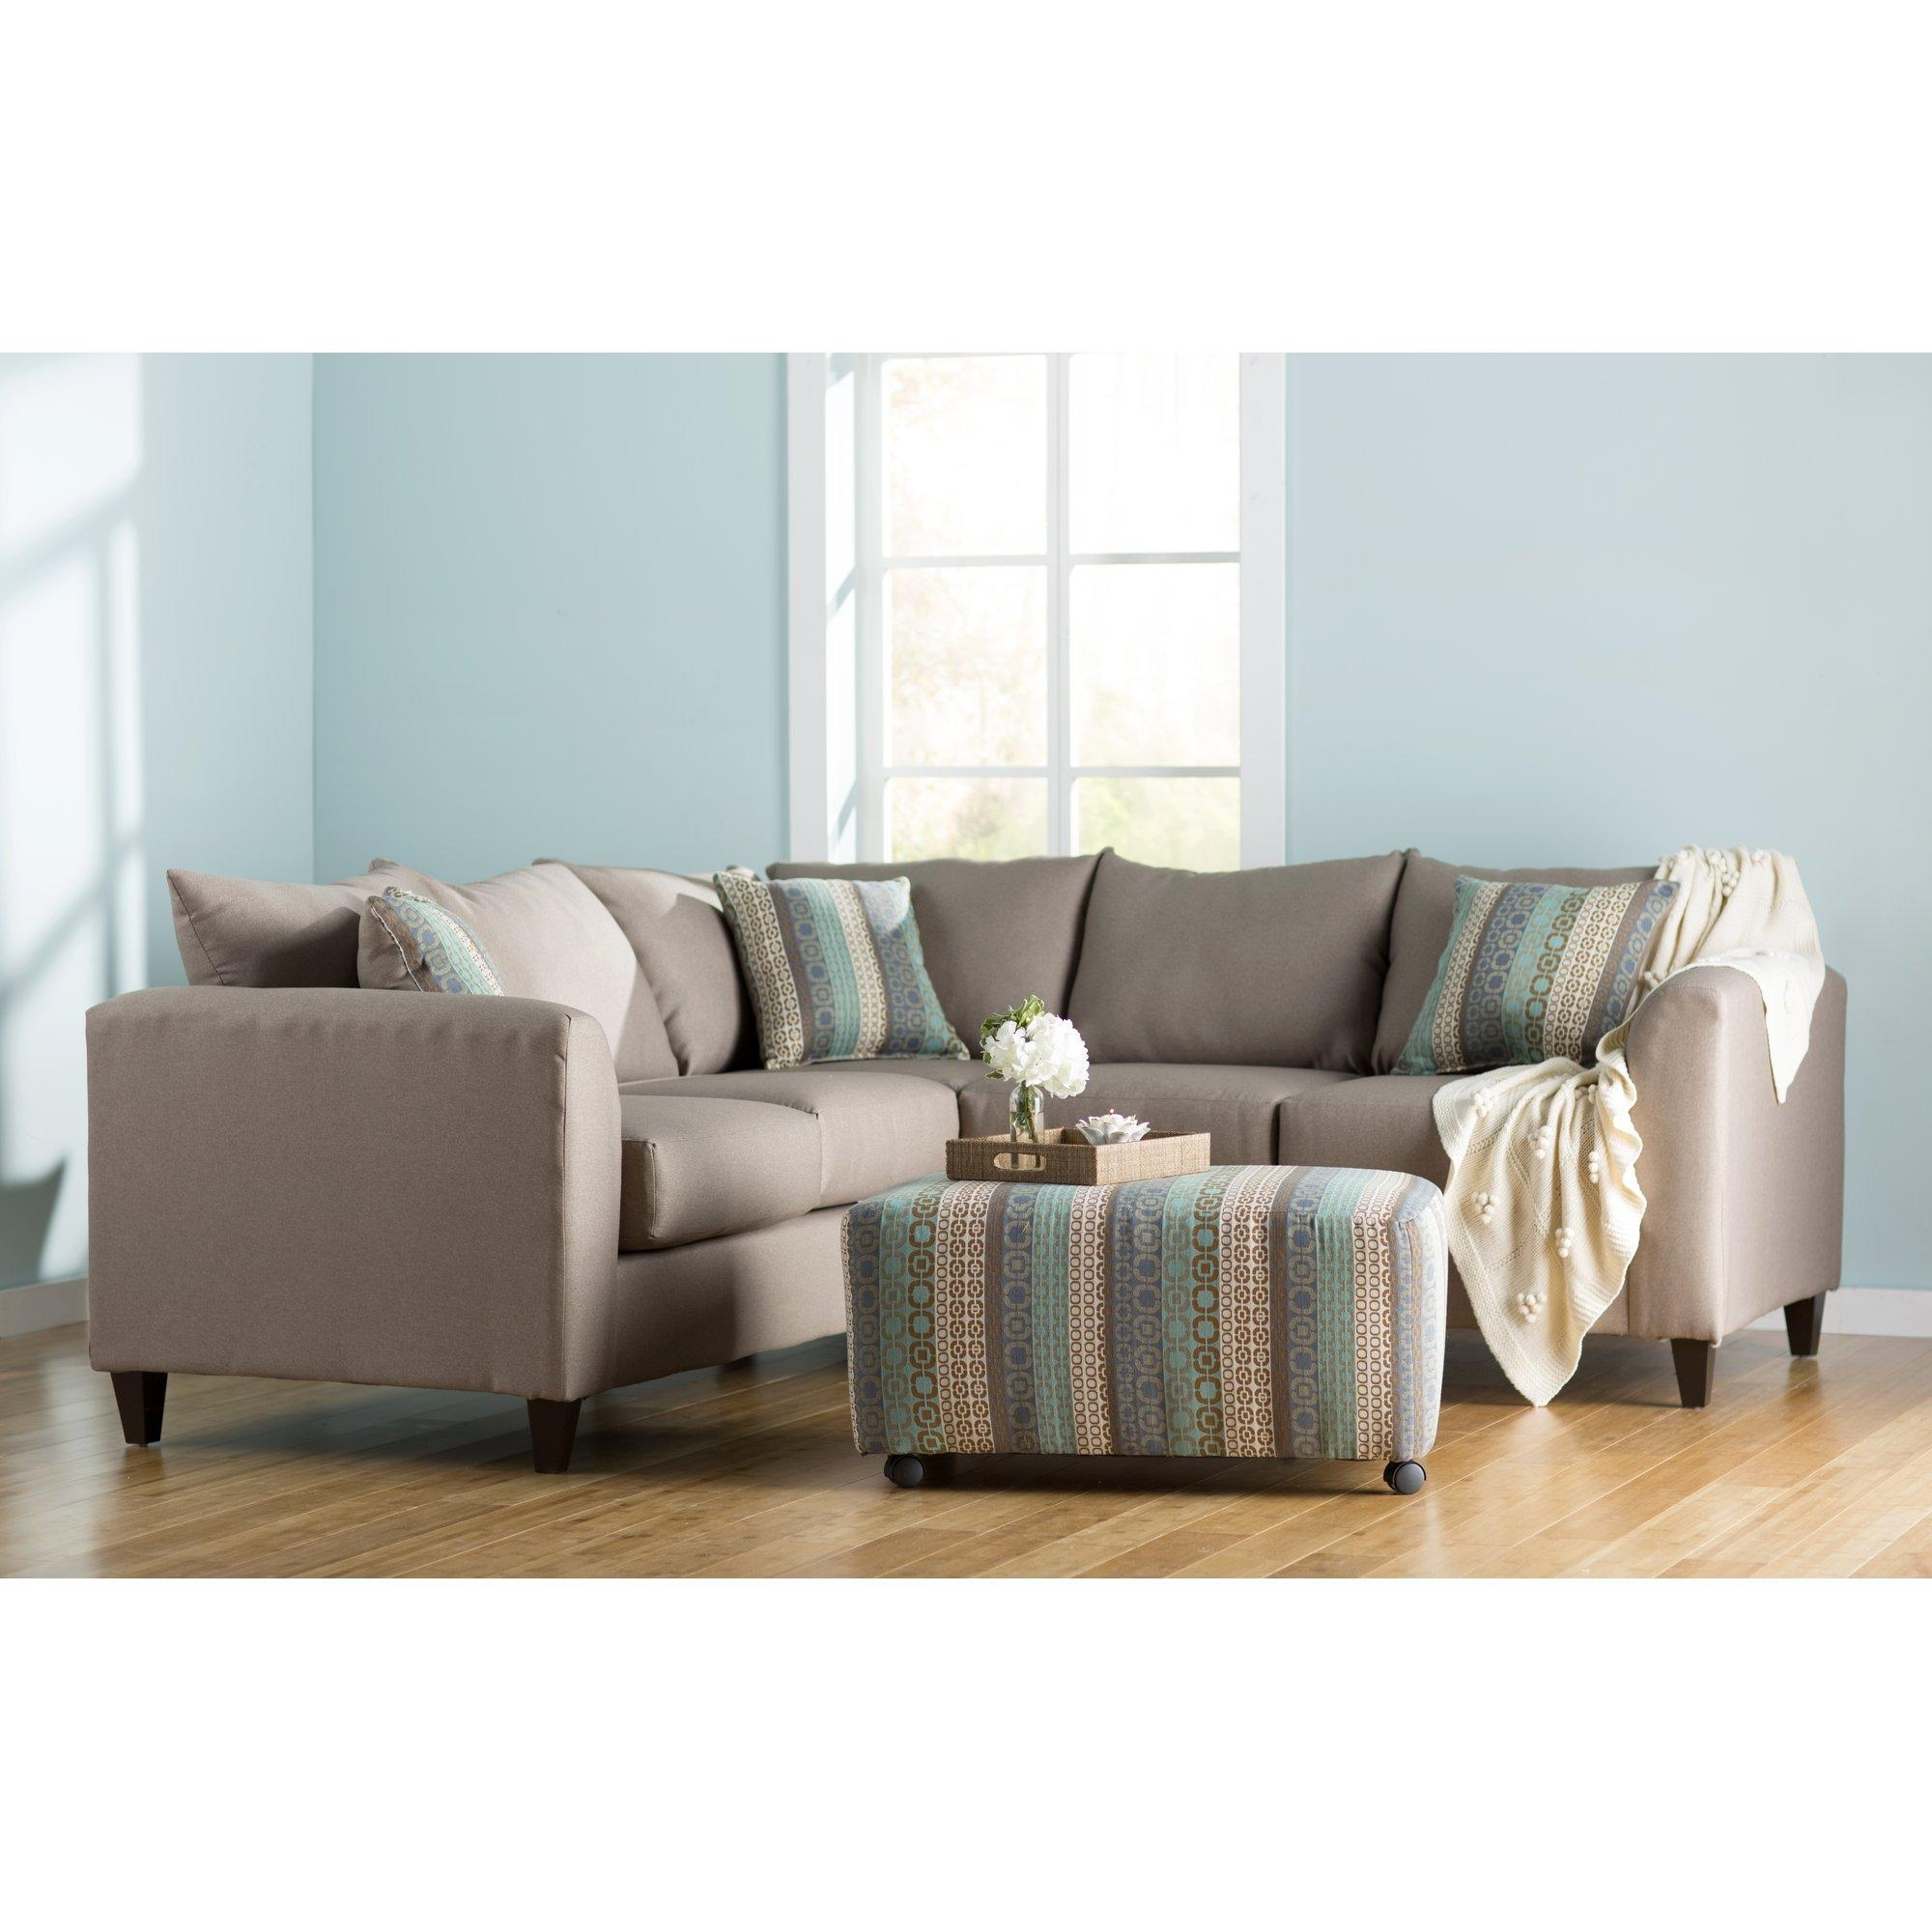 Beachcrest Home Serta Sectional & Reviews | Wayfair Supply Intended For Serta Sectional (Image 5 of 20)